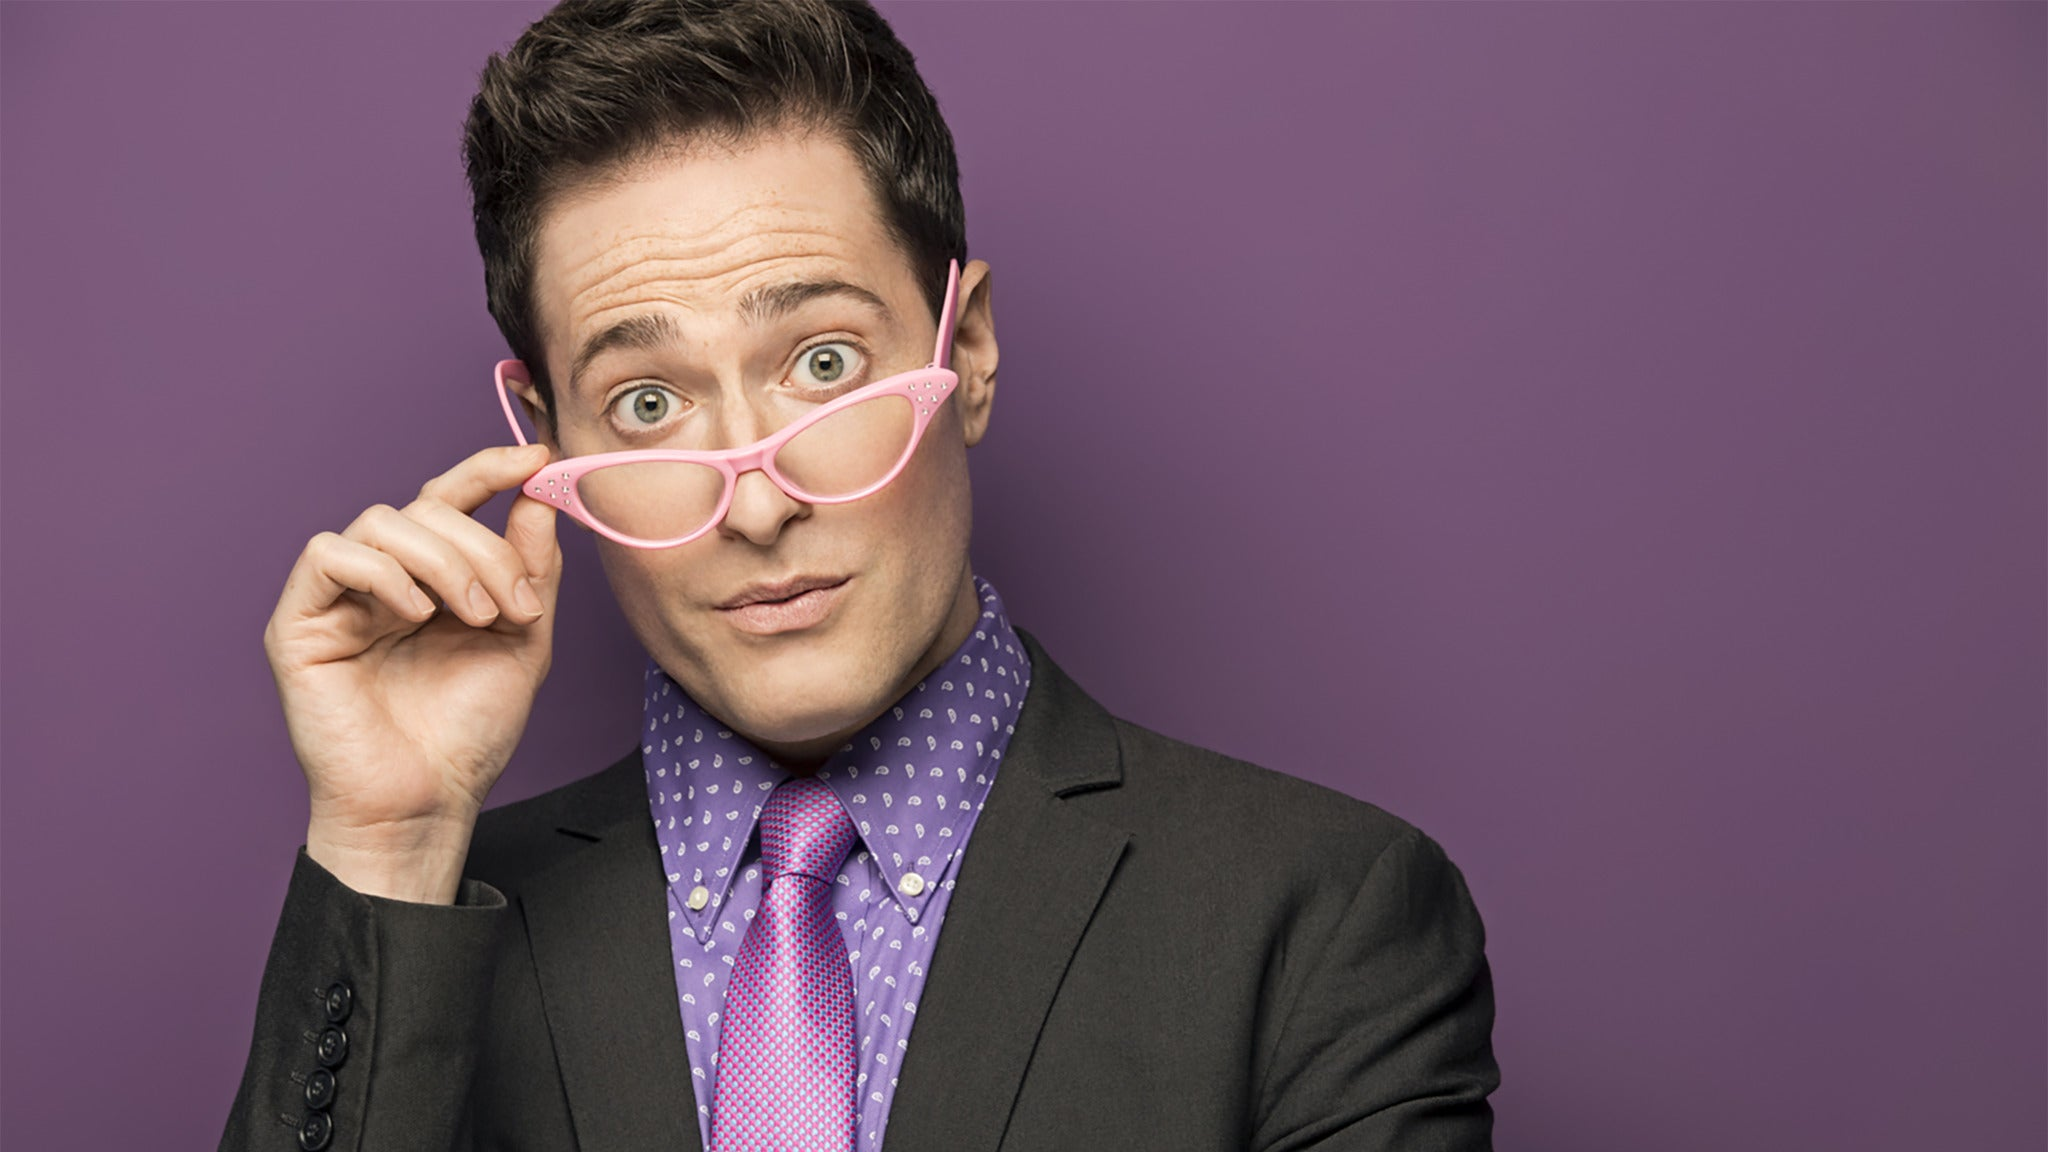 Randy Rainbow Live! at State Theatre - Minneapolis, MN 55402